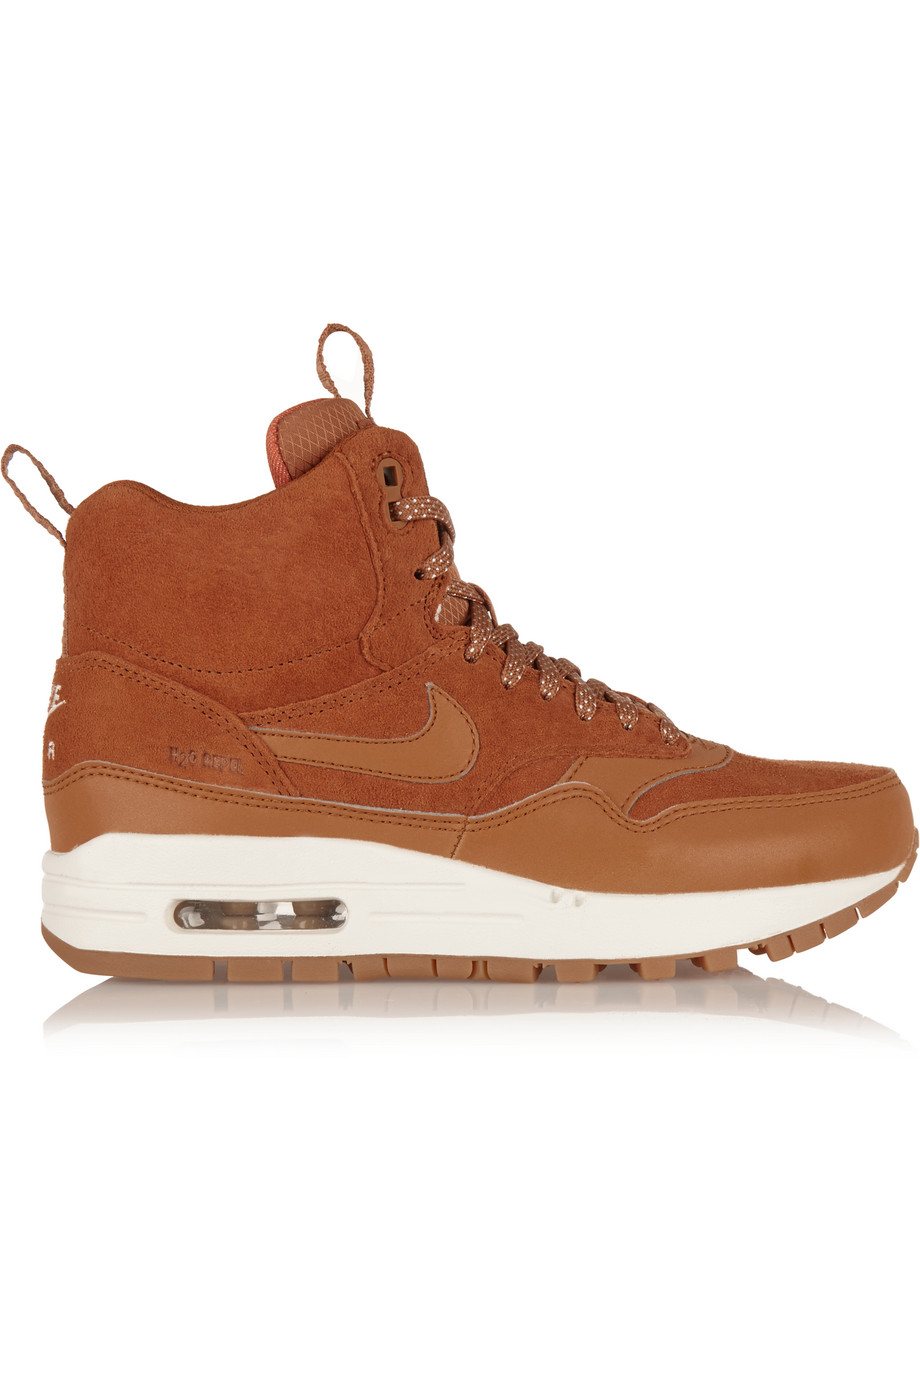 Nike Air Max 1 Suede and Leather High-Top Sneakers, Tan, Women's, Size: 10.5